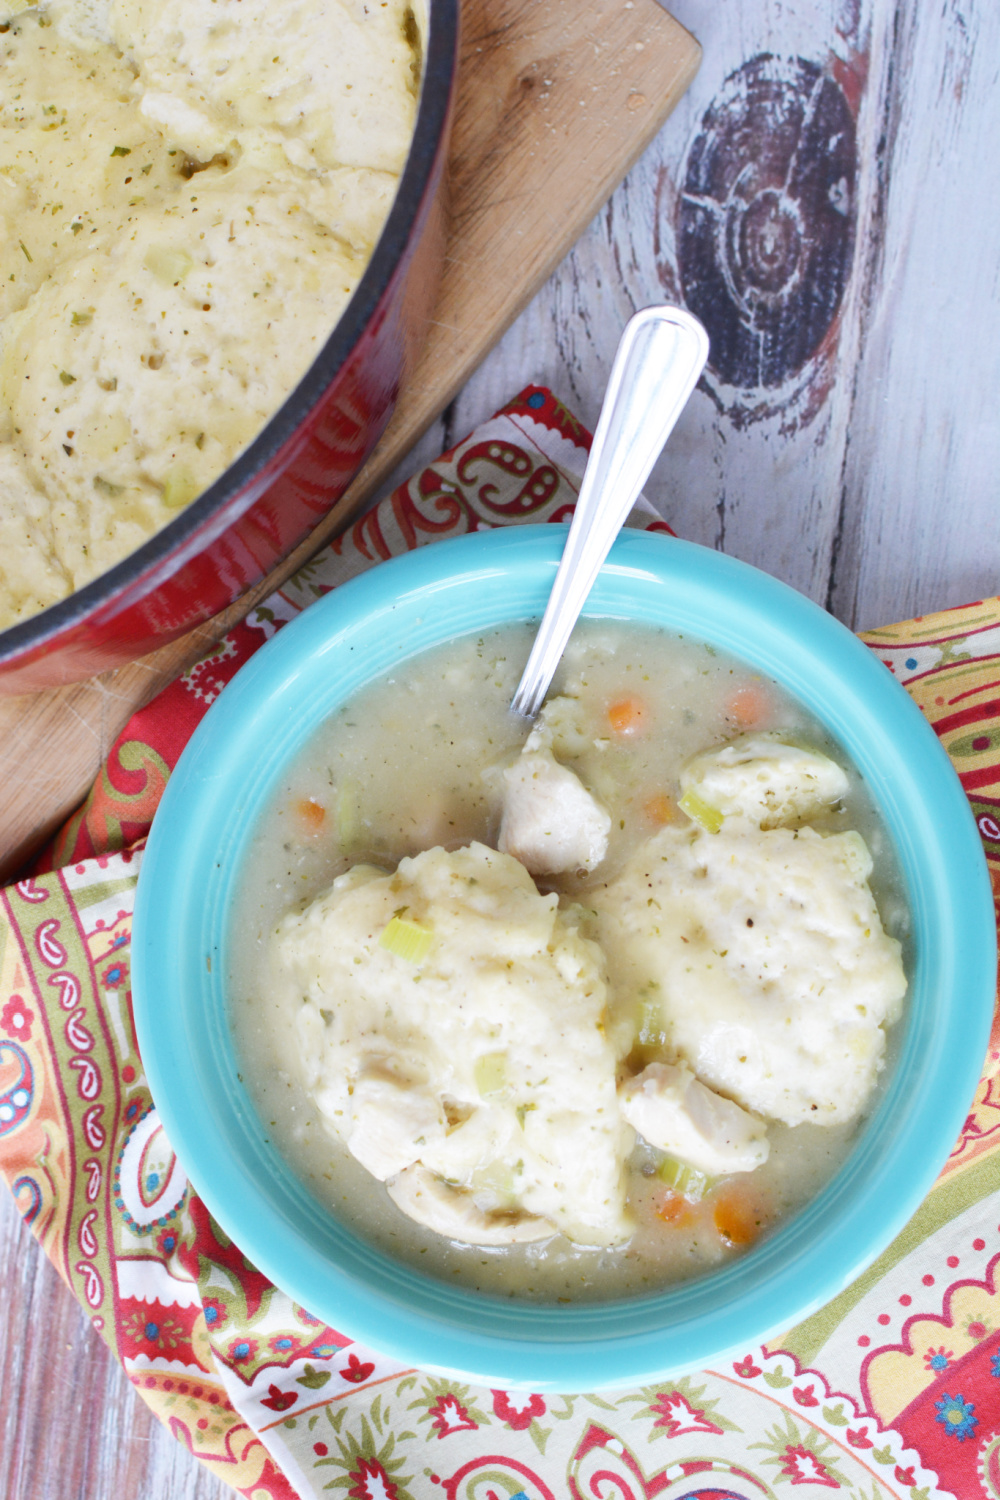 Easy Bisquick Chicken and Dumplings in a blue bowl with a spoon.